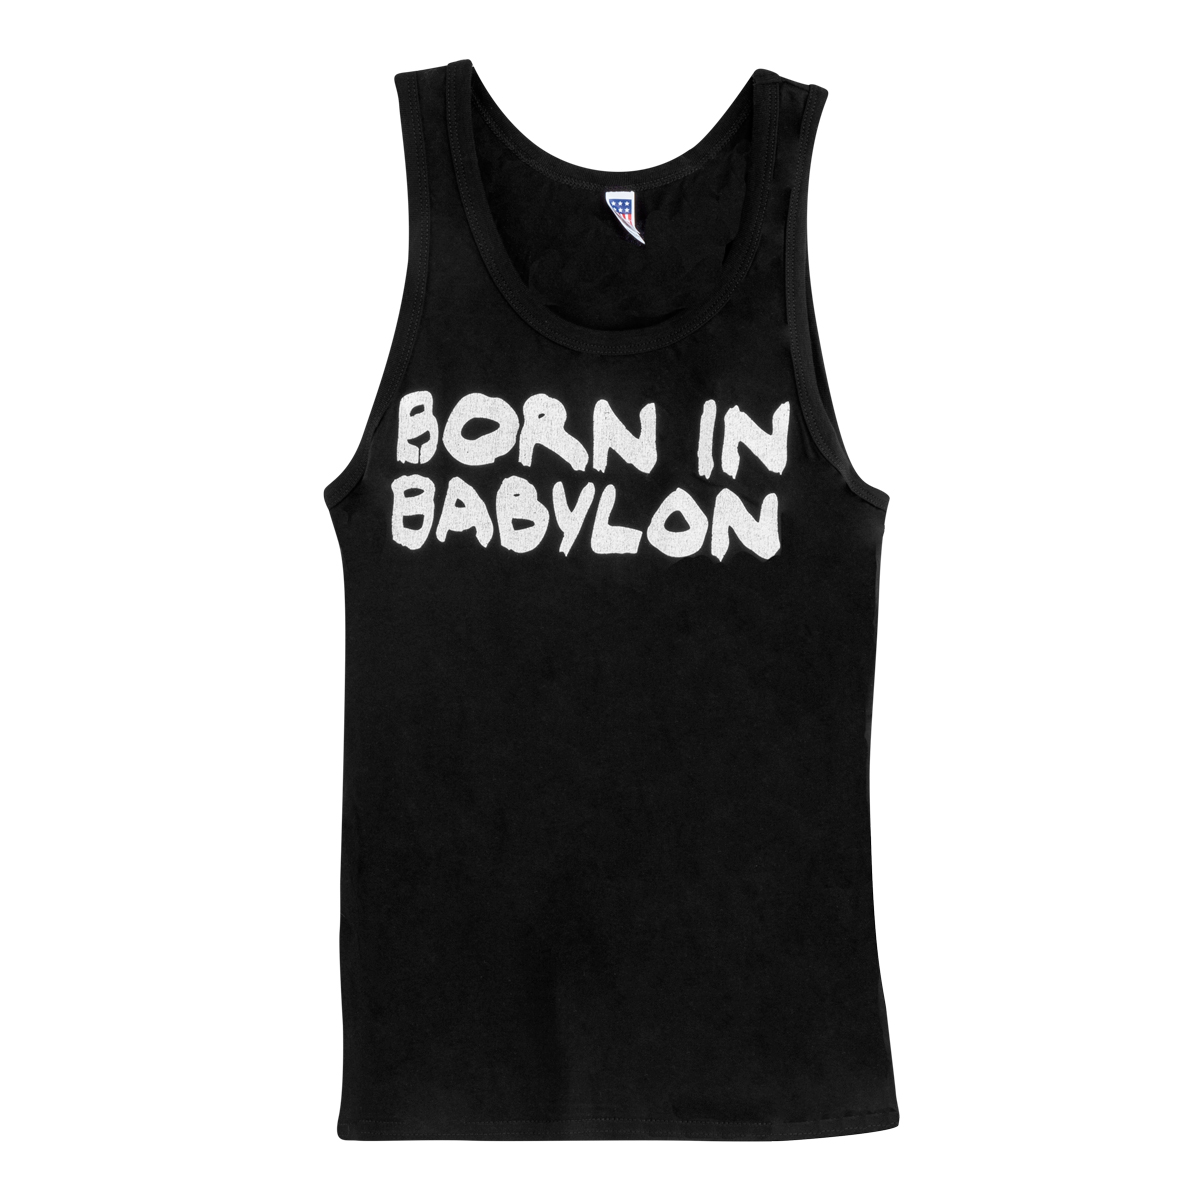 Men's Born In Babylon Tank - Black